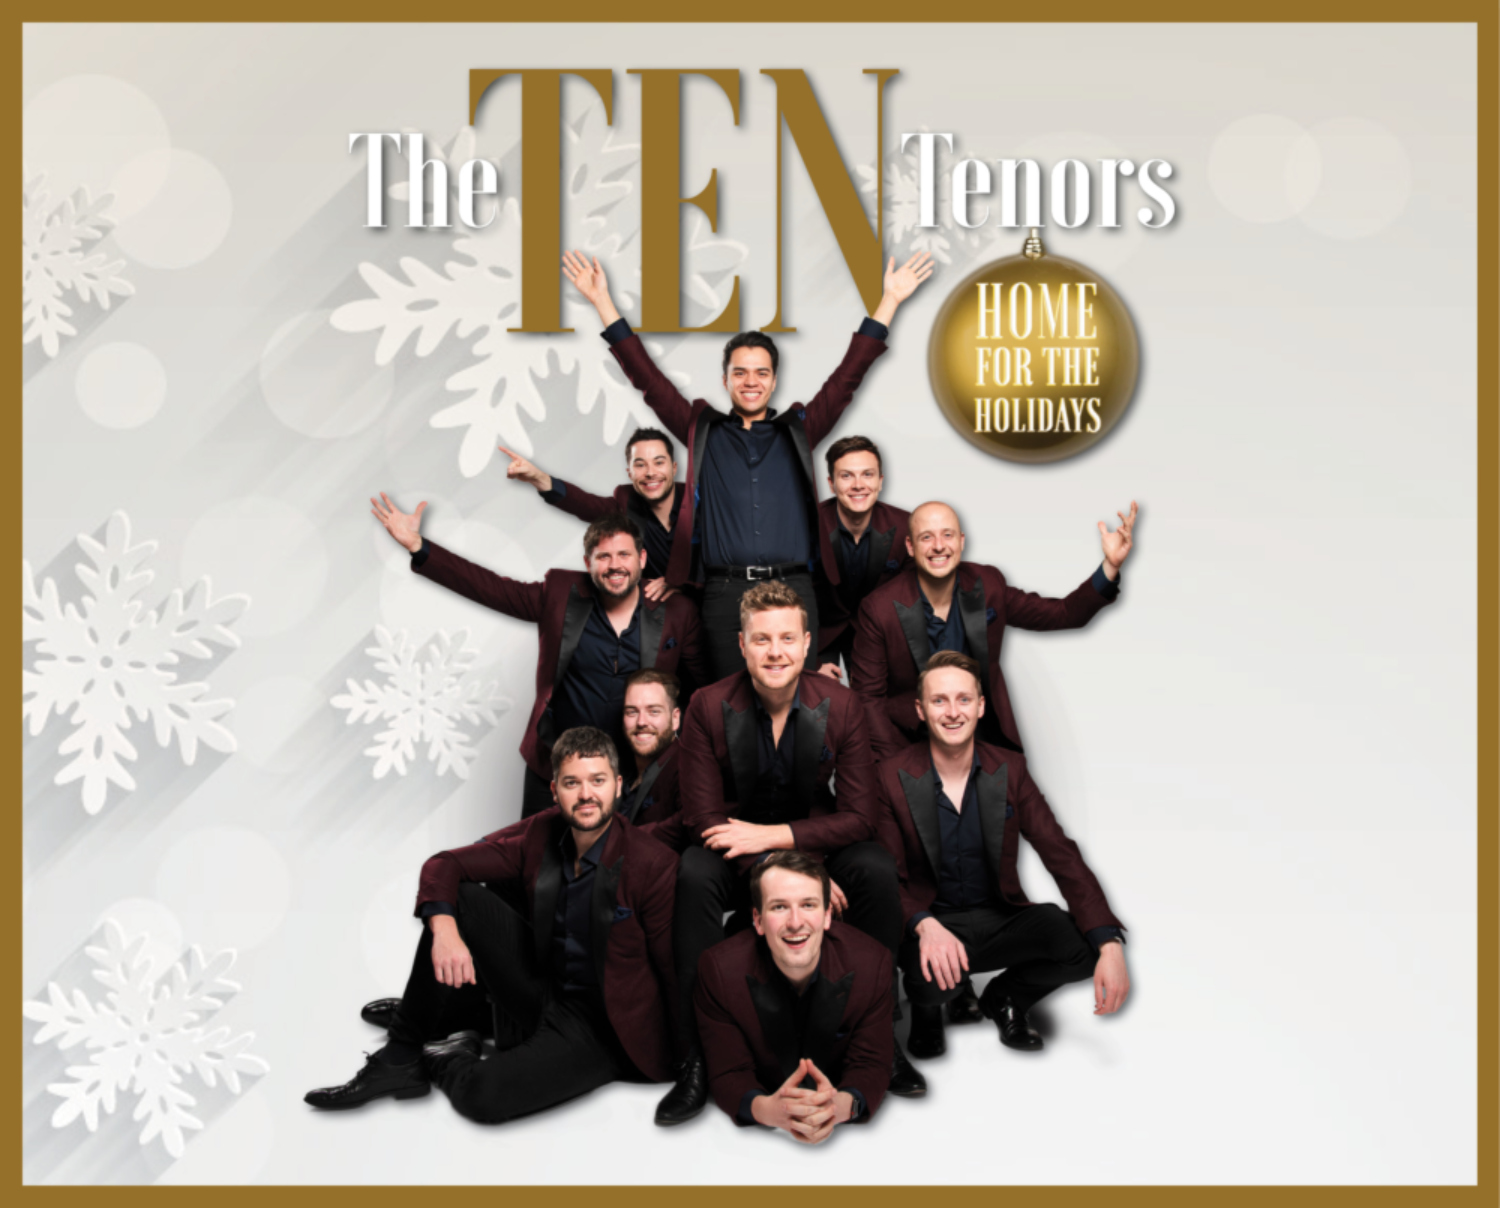 Image for THE TEN TENORS - HOME FOR THE HOLIDAYS - Fundraiser Concert Benefitting The Midland & Odessa Symphony & Chorale